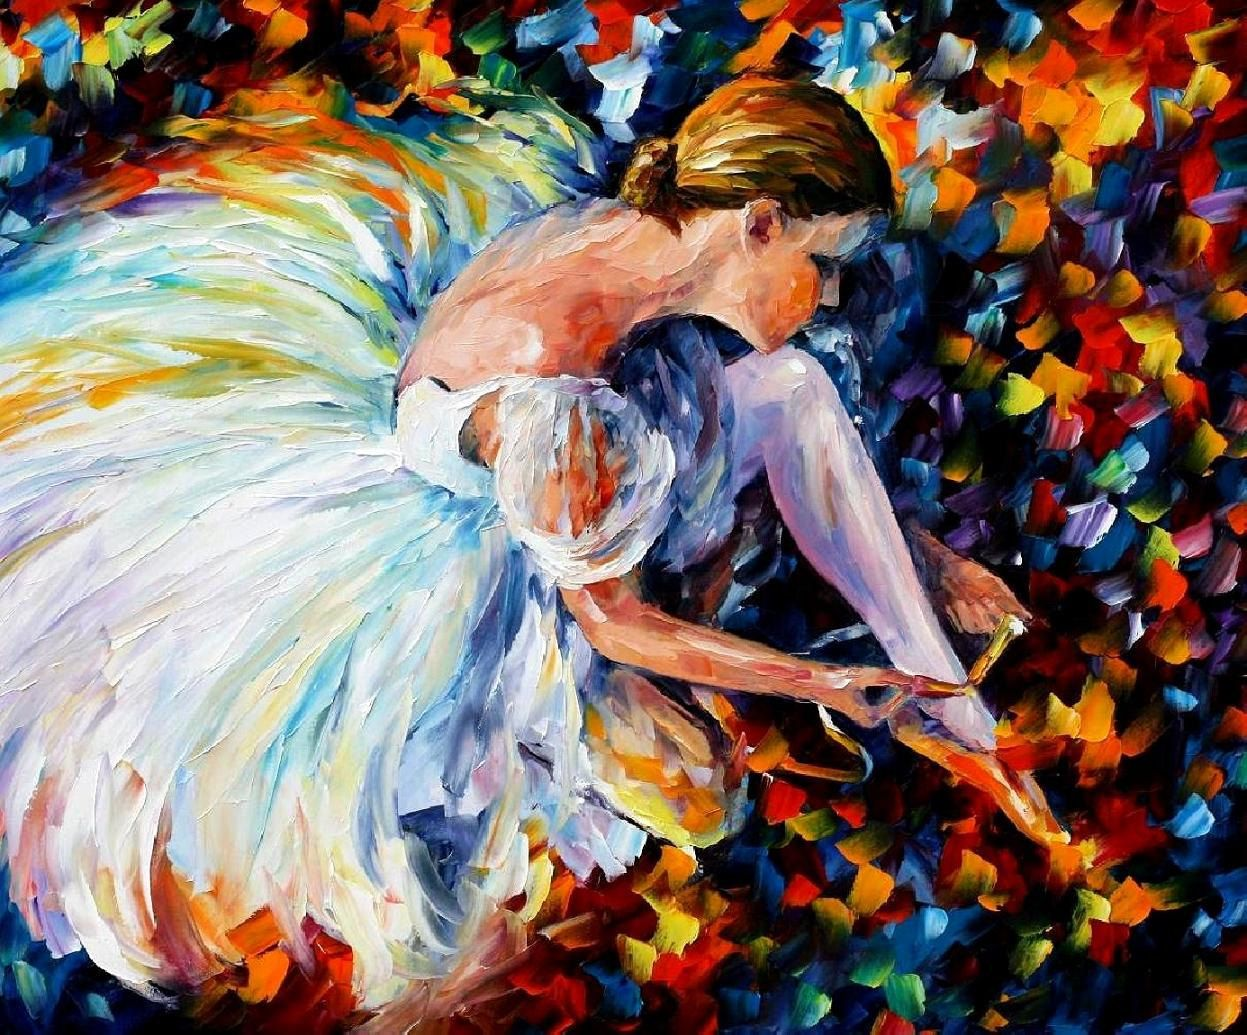 """Original Recreation Oil Painting on Canvas  Title: Ballerina Size: 36"""" x 30"""" (90 cm x 75 cm) Condition: Excellent Brand new Gallery Estimated Value: $6,500 Type: Original Recreation Oil Painting on Canvas by Palette Knife  This is a recreation of a piece which was already sold.  The rec..."""